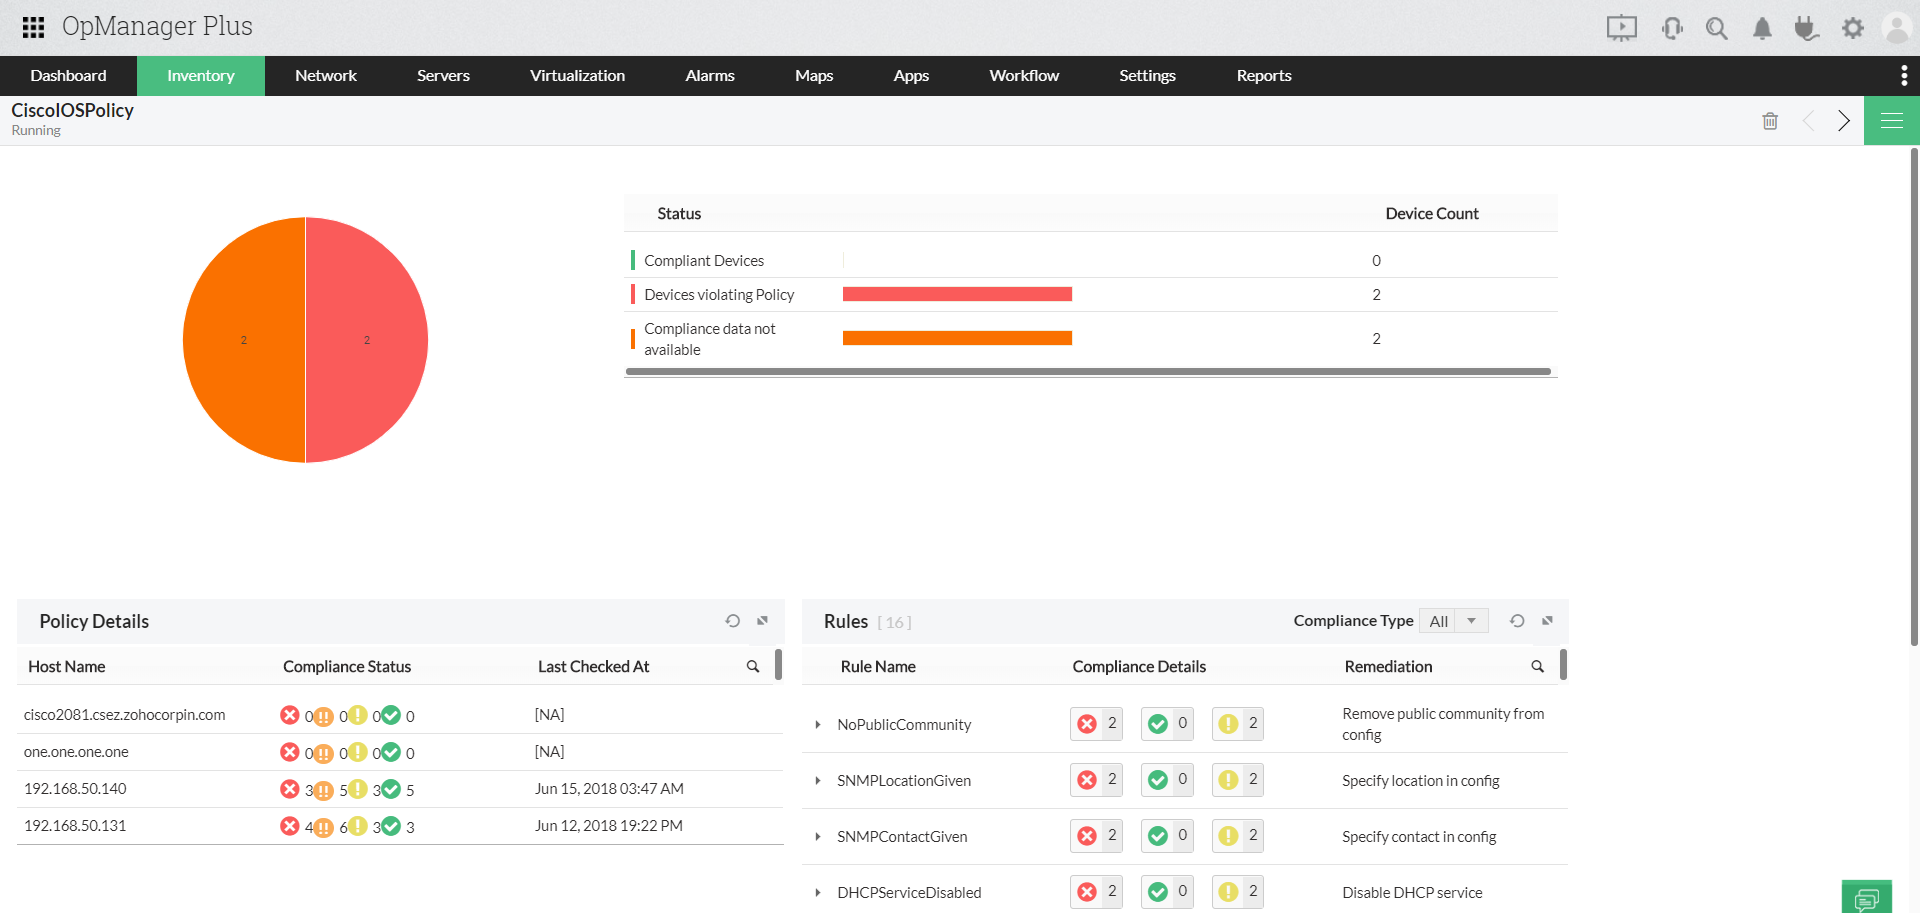 IT Infrastructure Management System - ManageEngine OpManager Plus